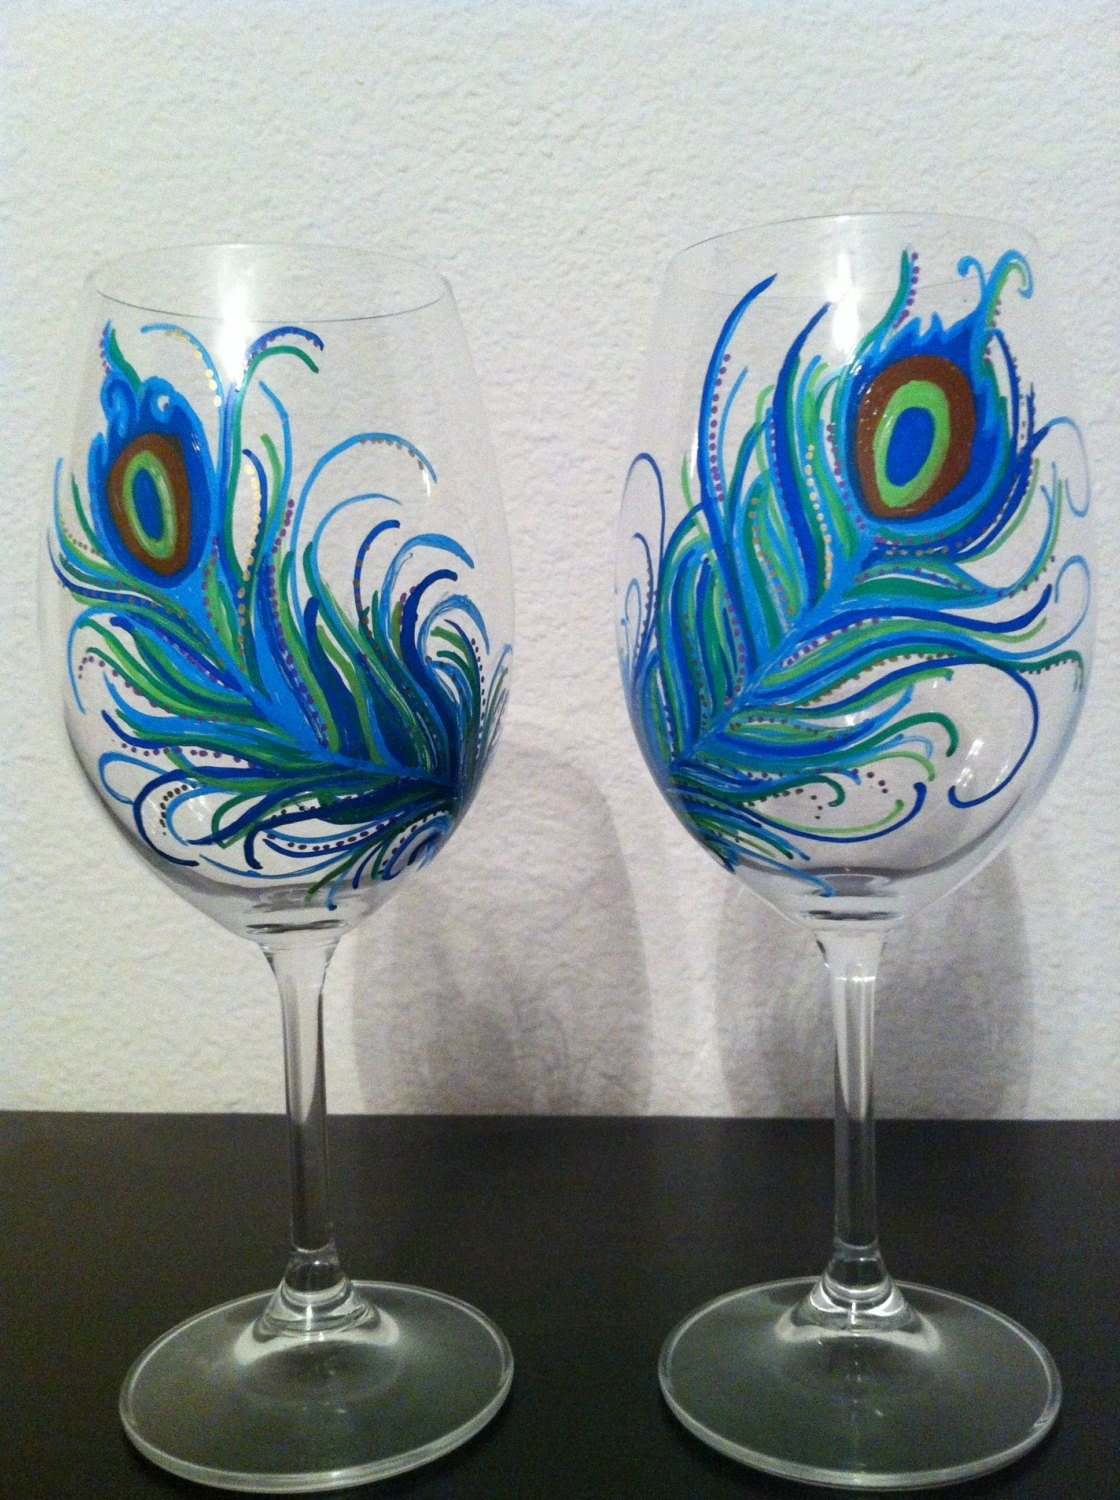 10 Cute Ideas For Painting Wine Glasses ideas for painting wine glasses the greatest glass painting ideas 2021